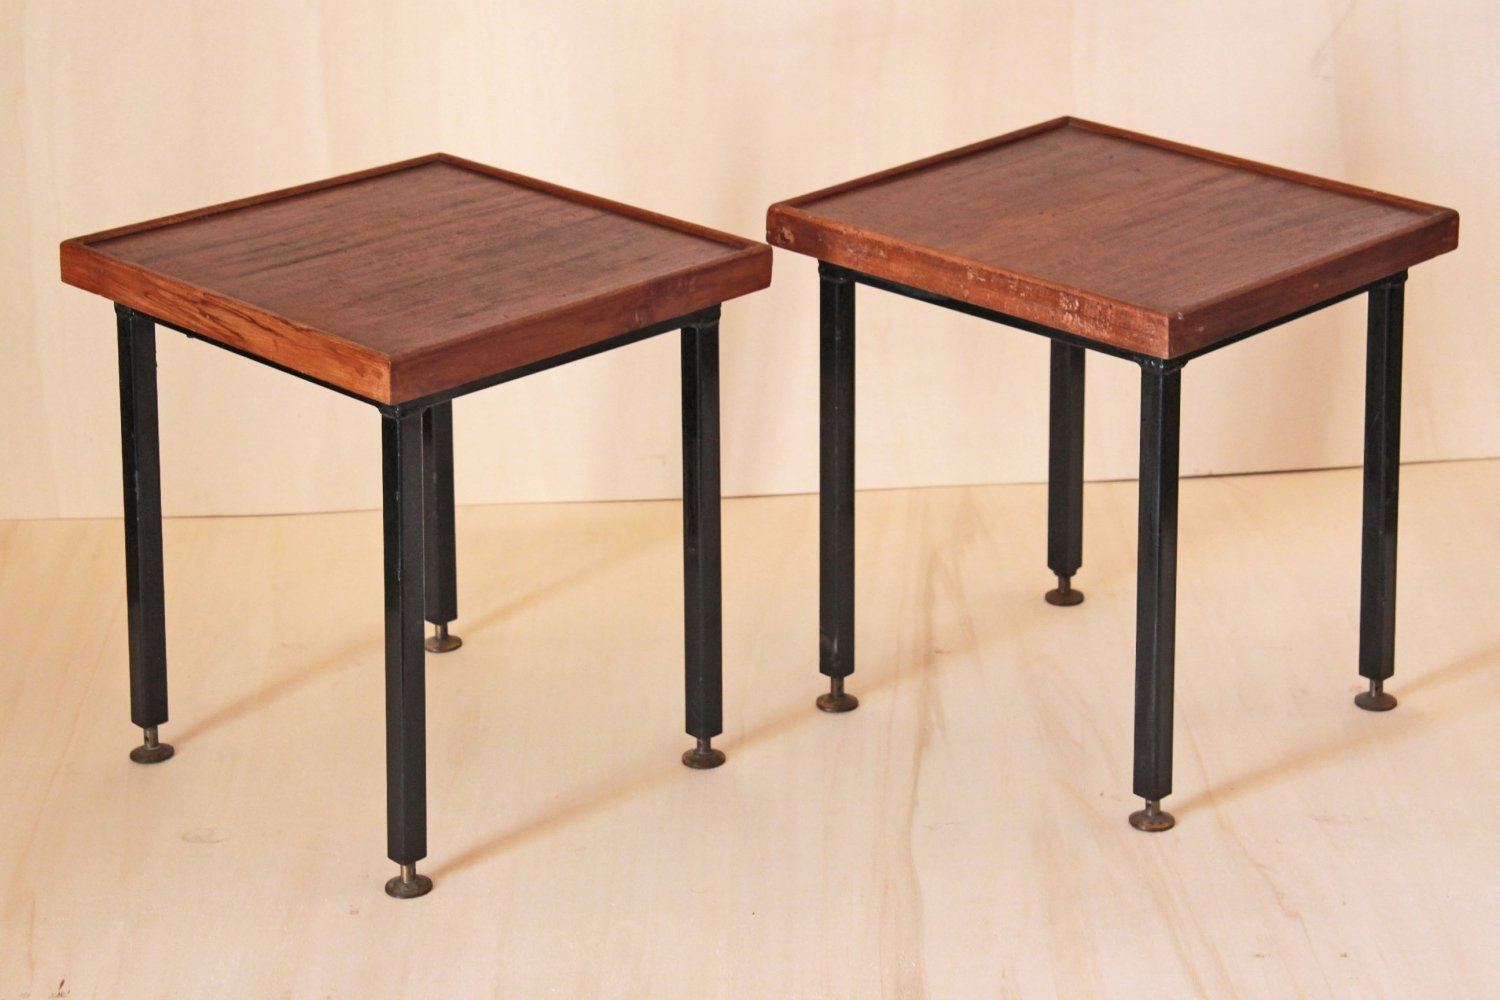 Pair of Scandinavian coffee tables, 1950s